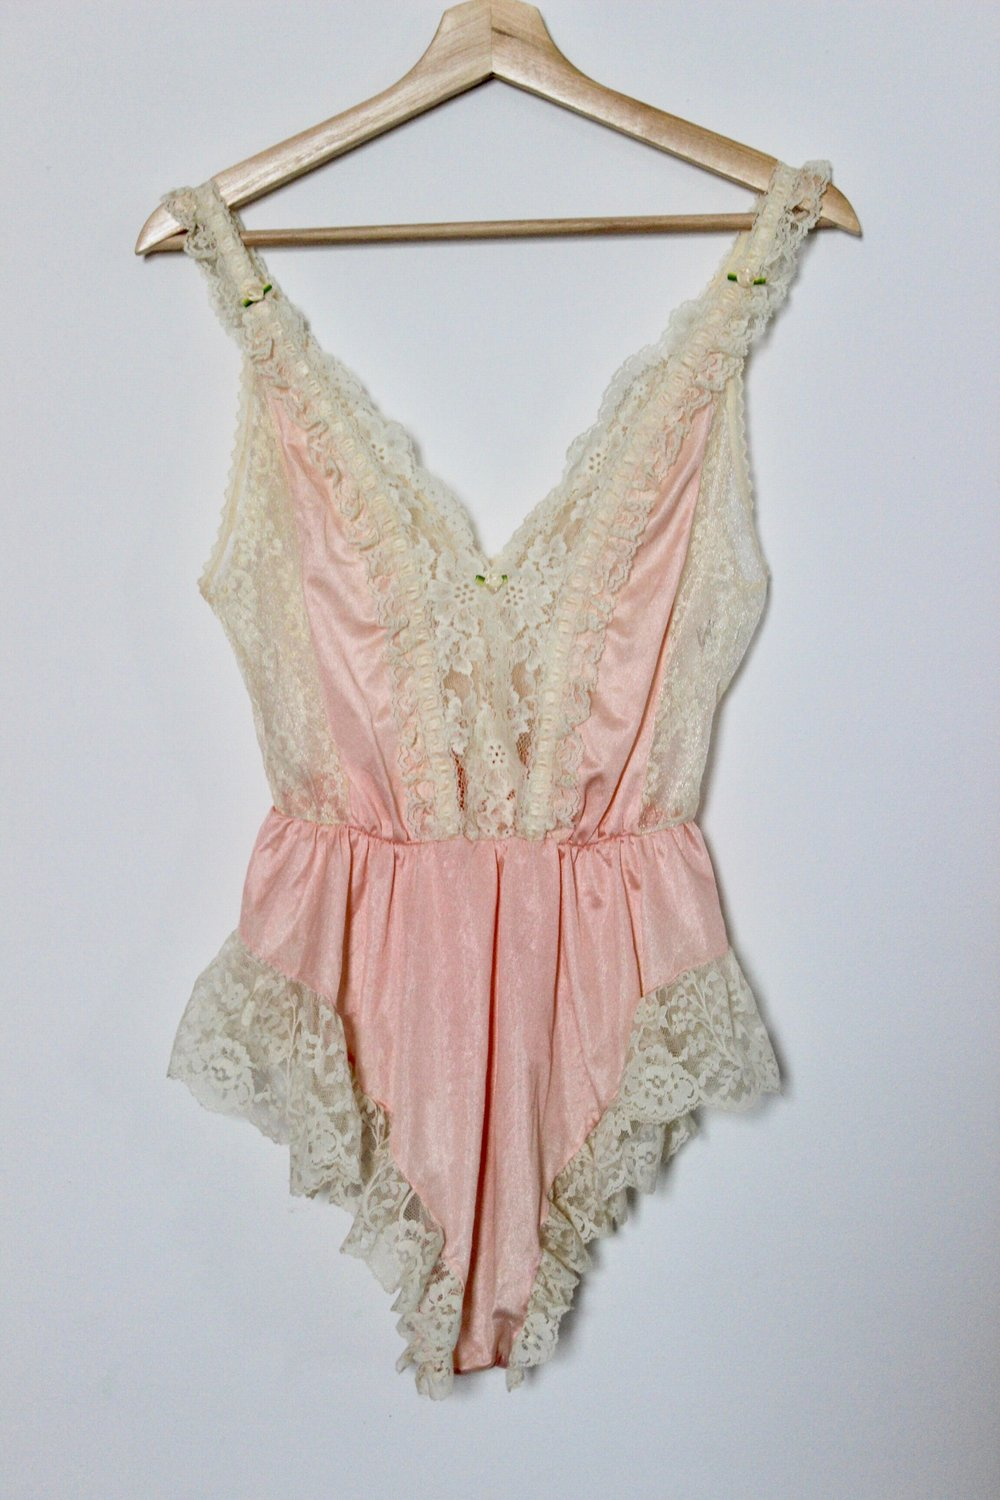 Peach & Ivory Lace Teddy Romper